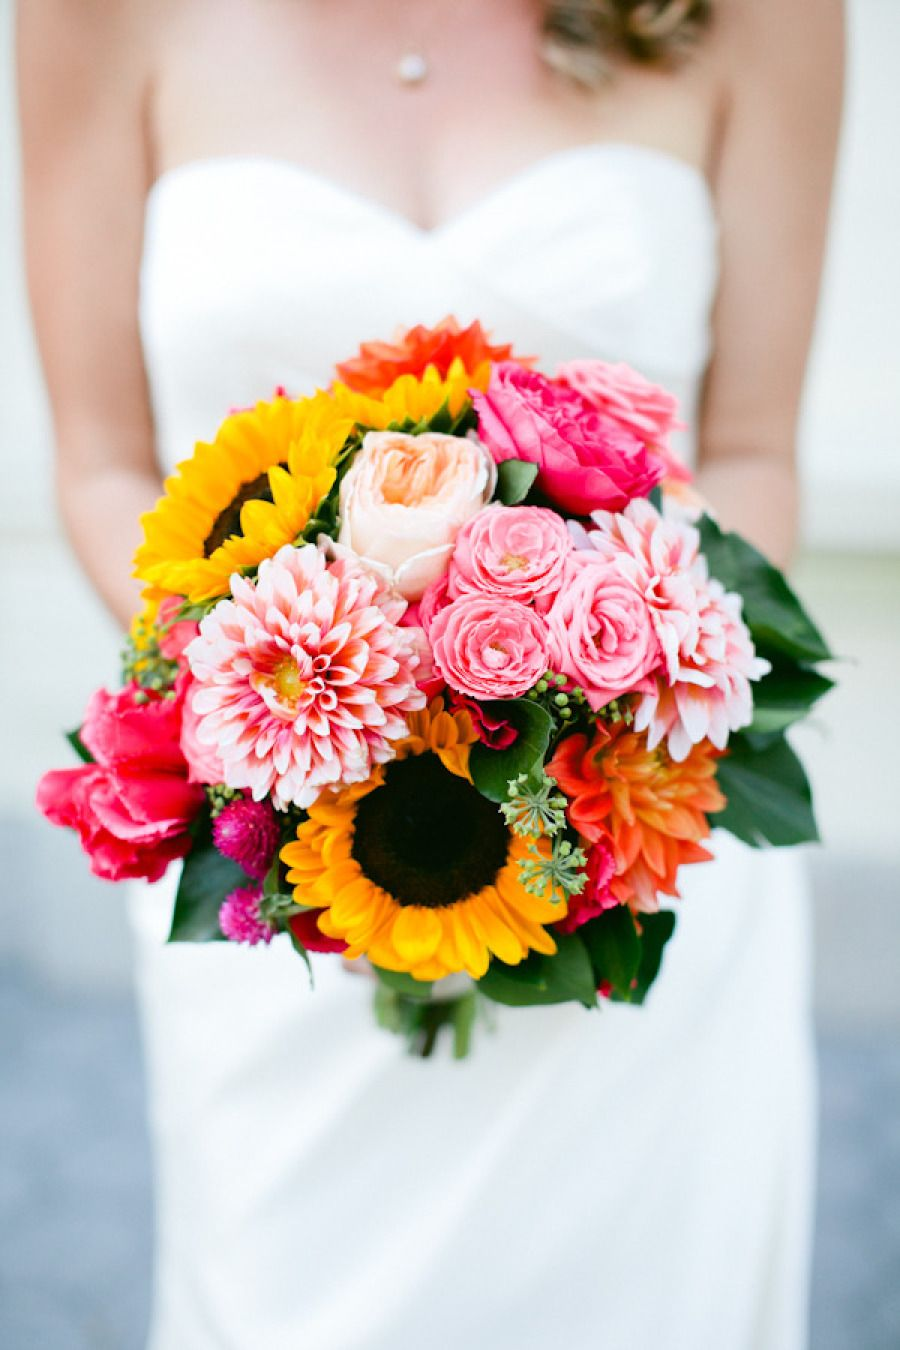 Perfect Fall Wedding Bouquet Ideas for Autumn Brides - wedding bouquet, pretty bouquet #fallwedding #autumnwedding #fallbouquet